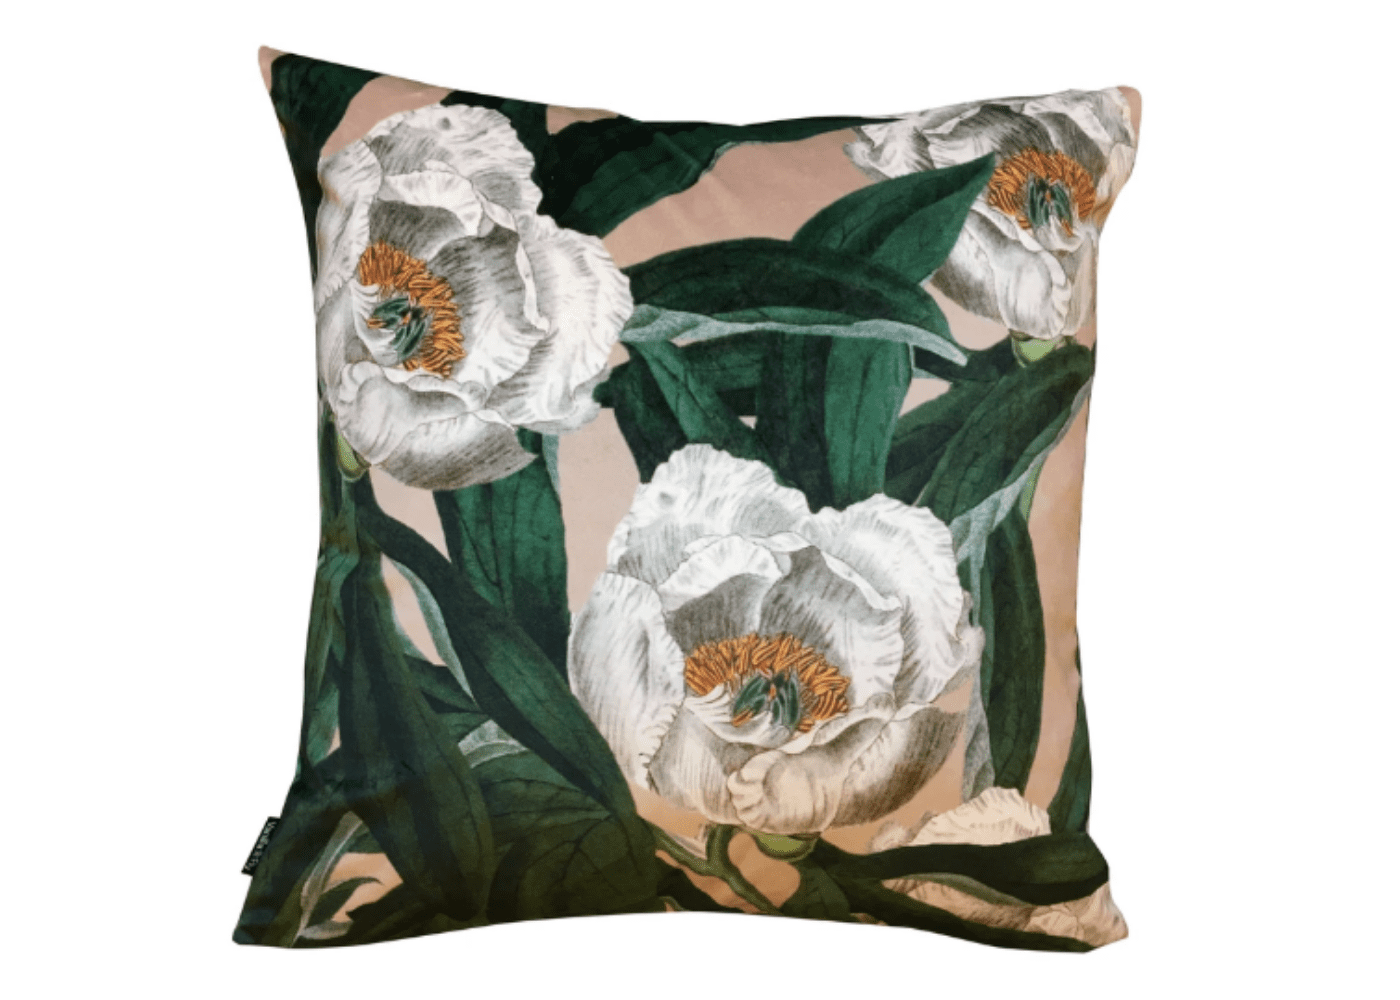 Tree peony cushion | Mother's Day gifts